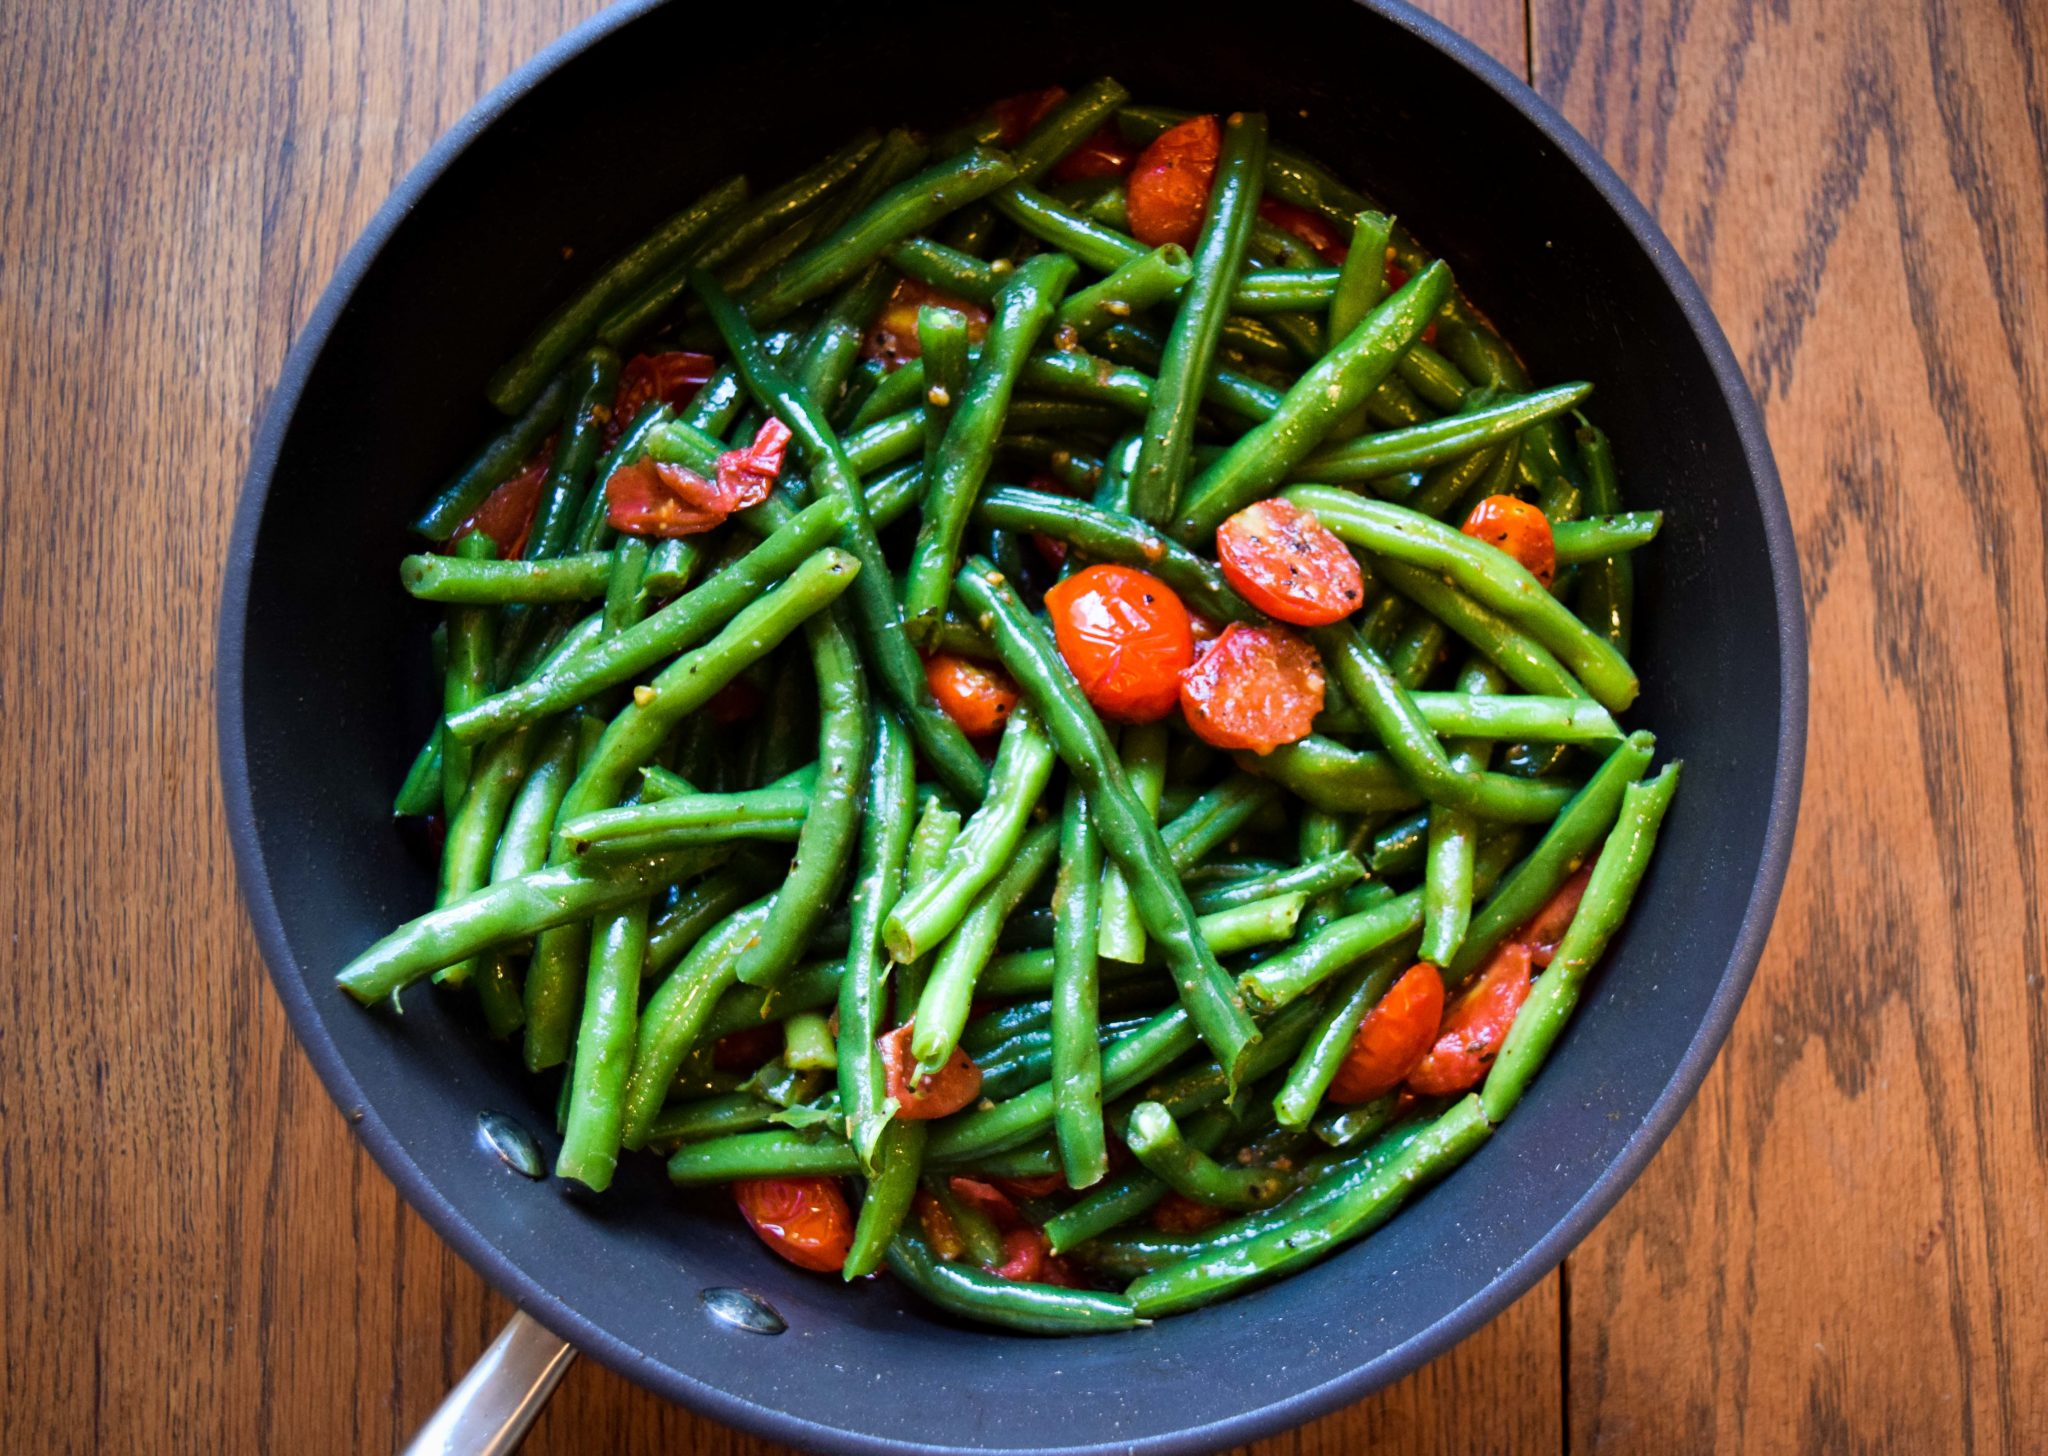 Green beans & cherry tomatoes